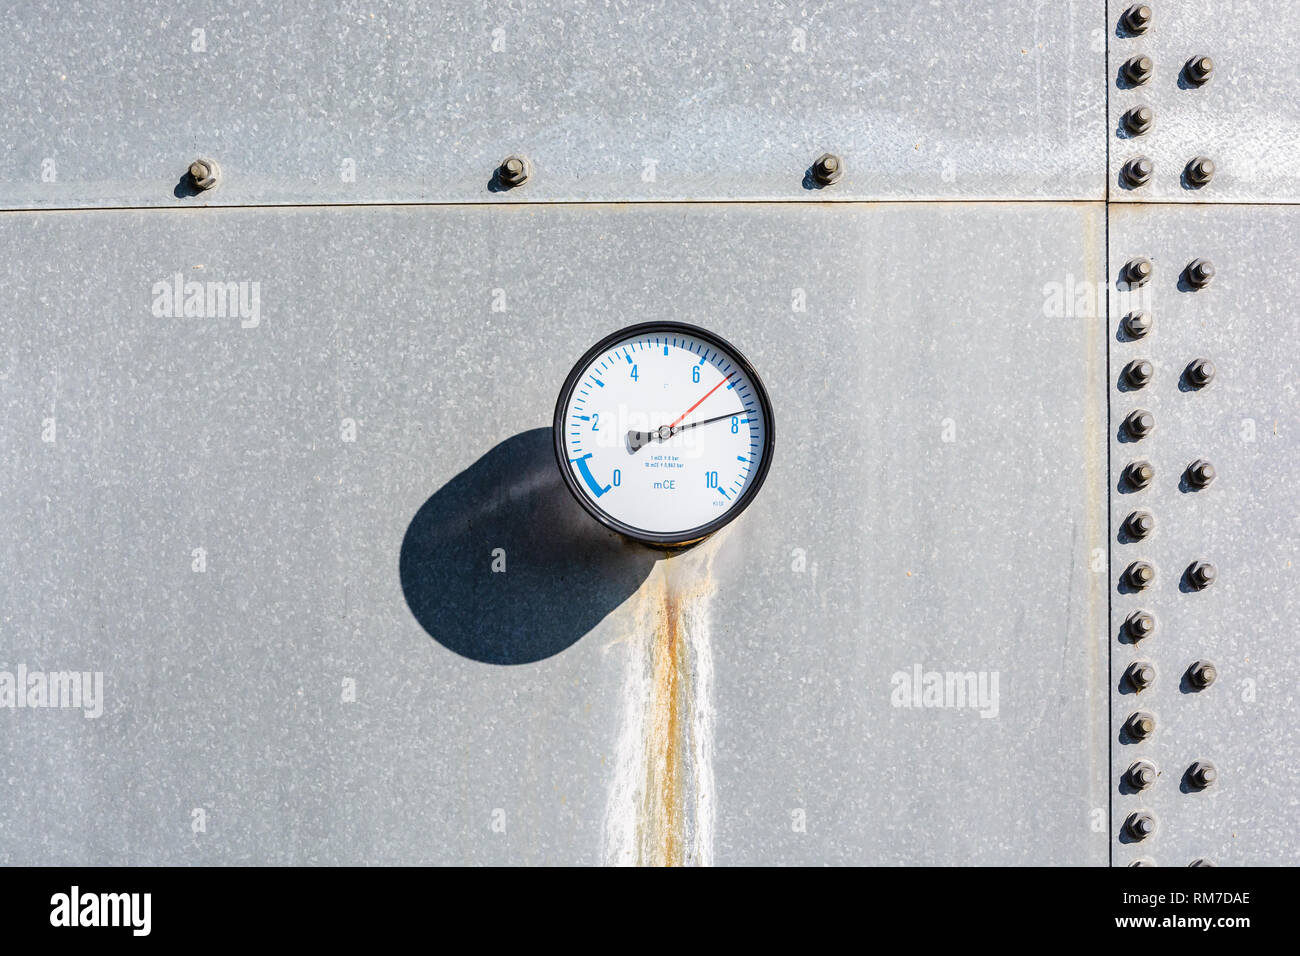 A round gauge with a dry and rusty streak running down below, fitted on the wall of a galvanized steel water tank, with blue figures on a white dial. - Stock Image